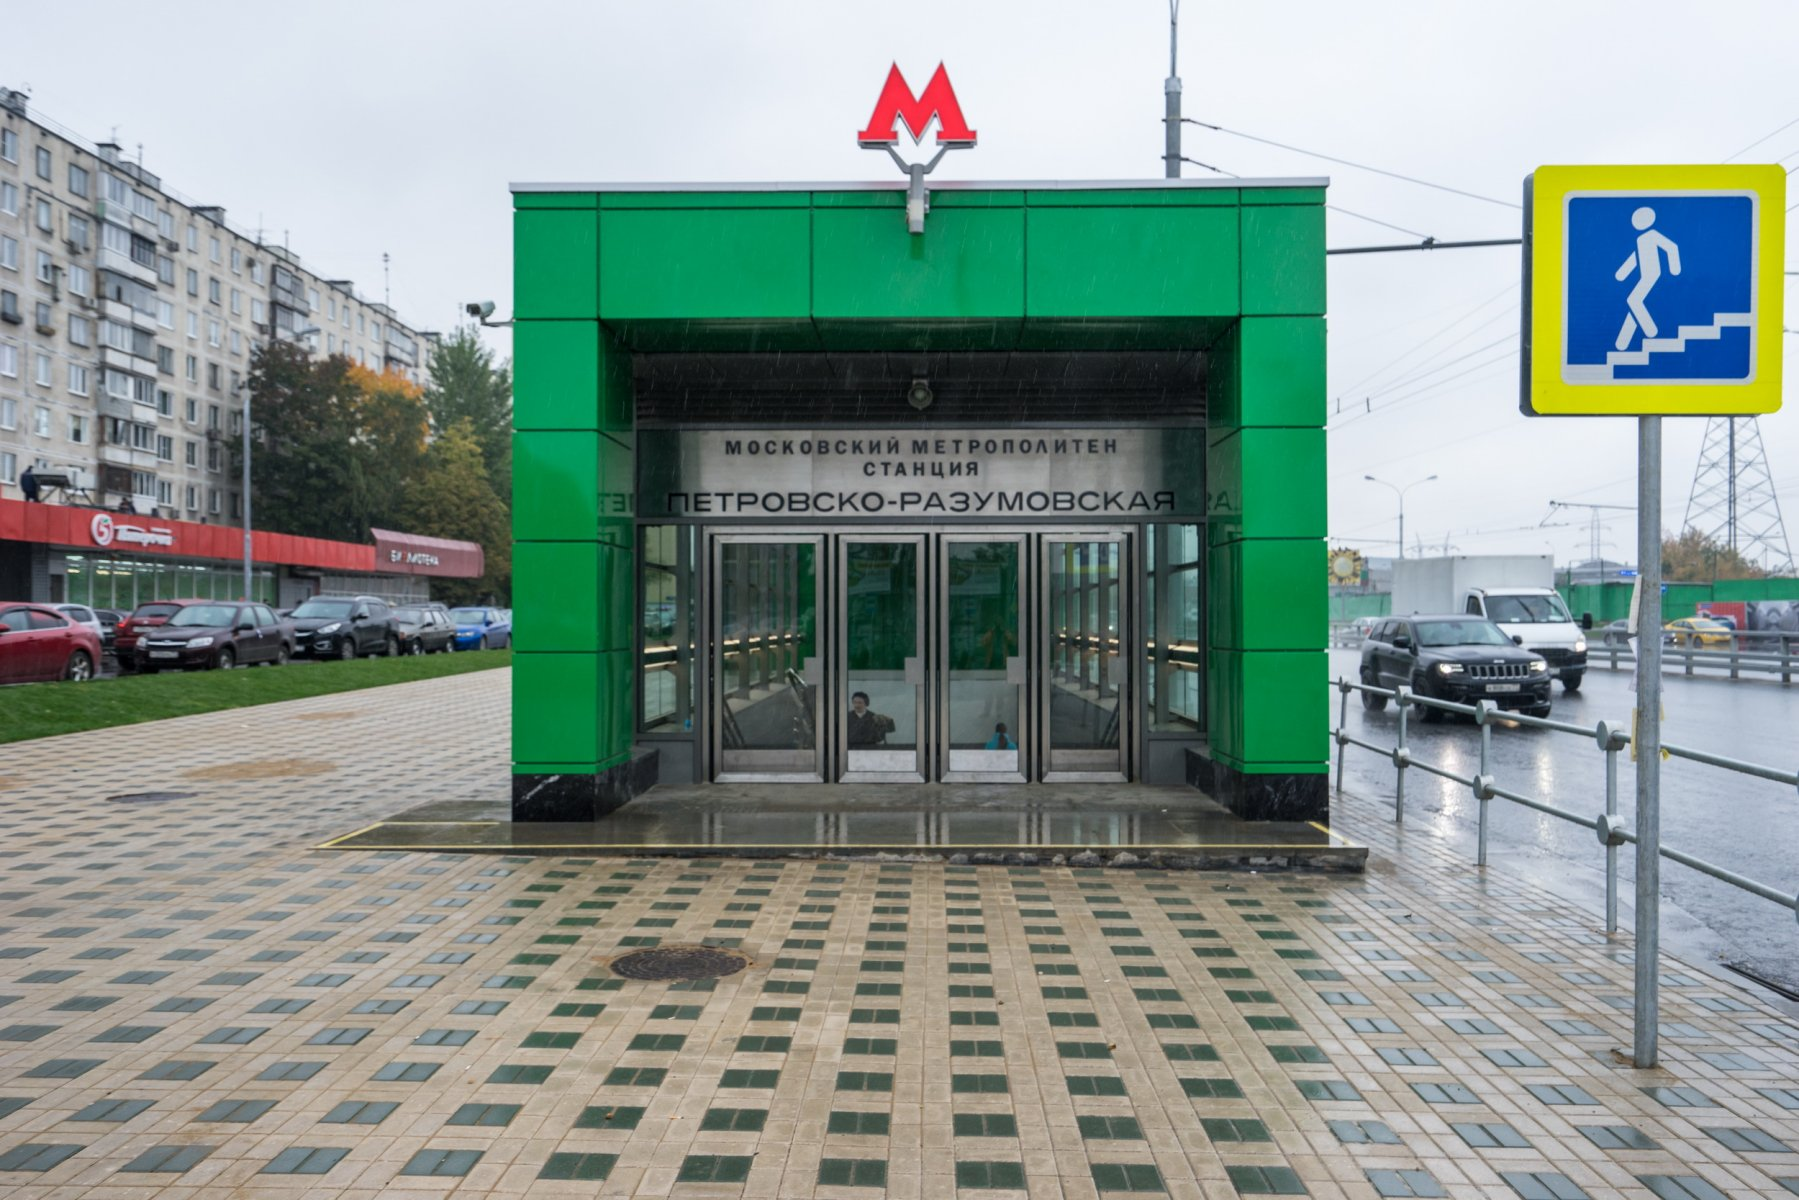 February tenders: 306 million rubles for biometric control cameras of the Moscow metro turnstile complex